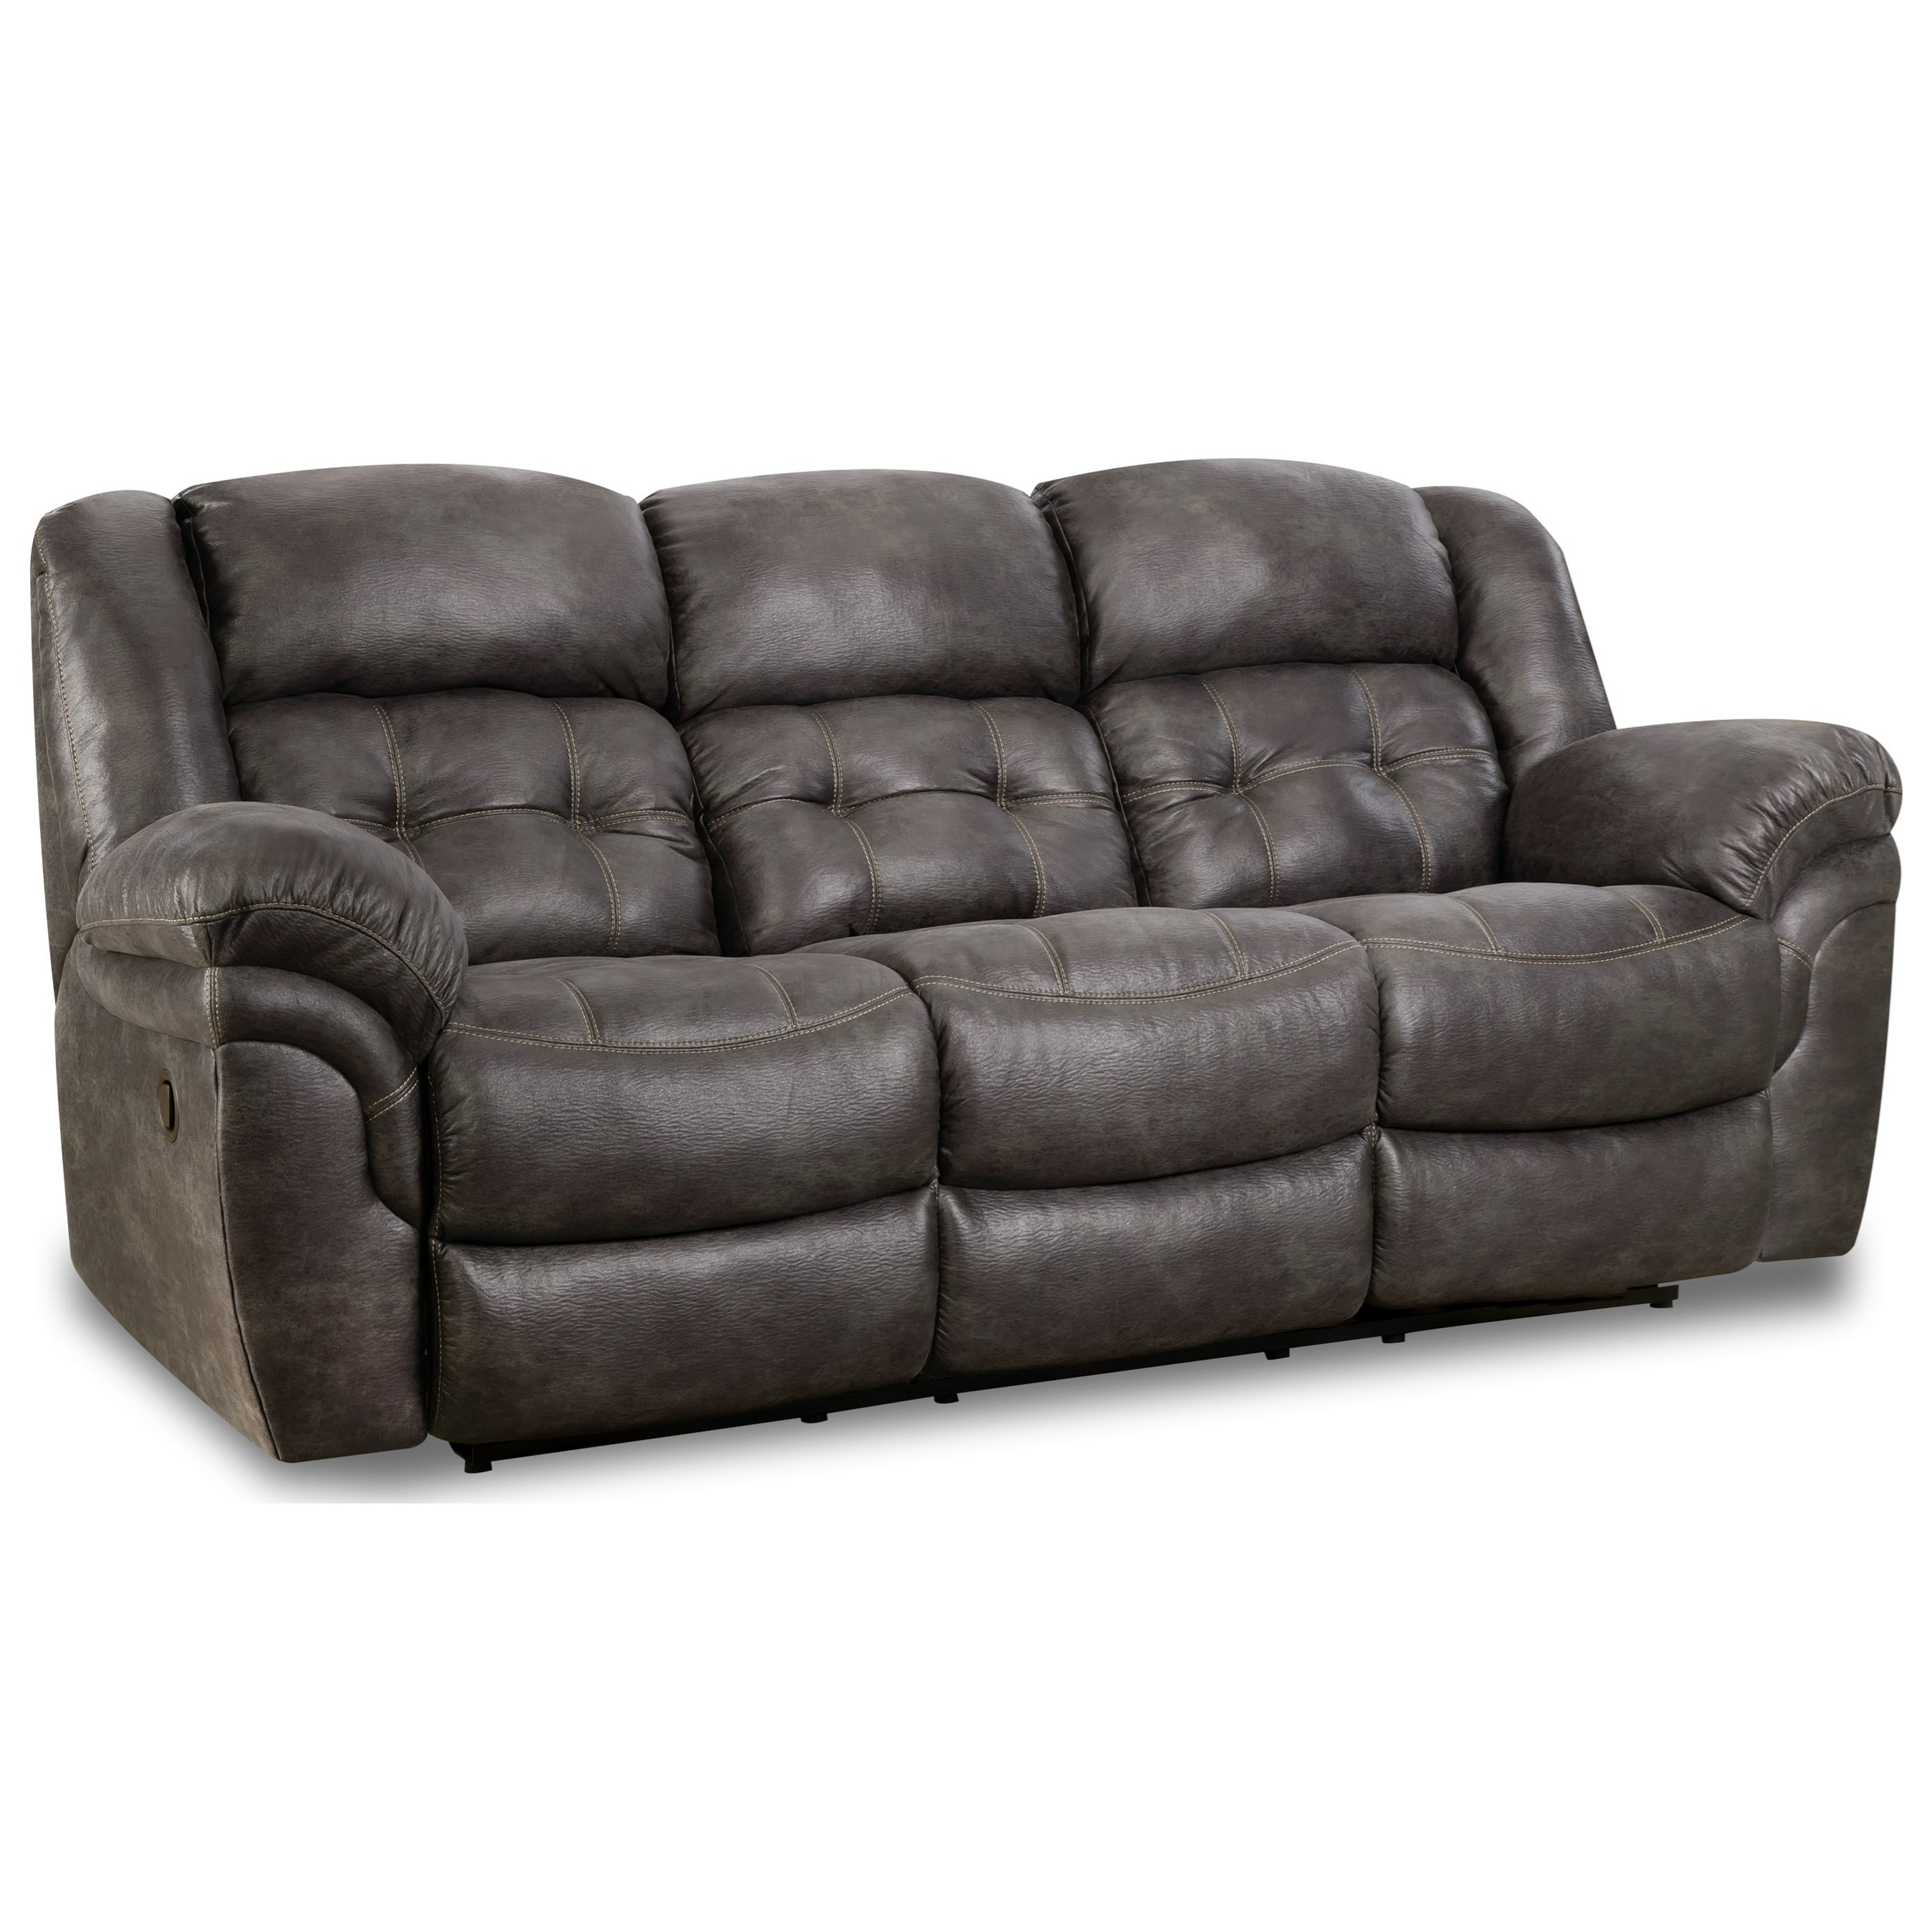 129 Reclining Sofa  by HomeStretch at Adcock Furniture